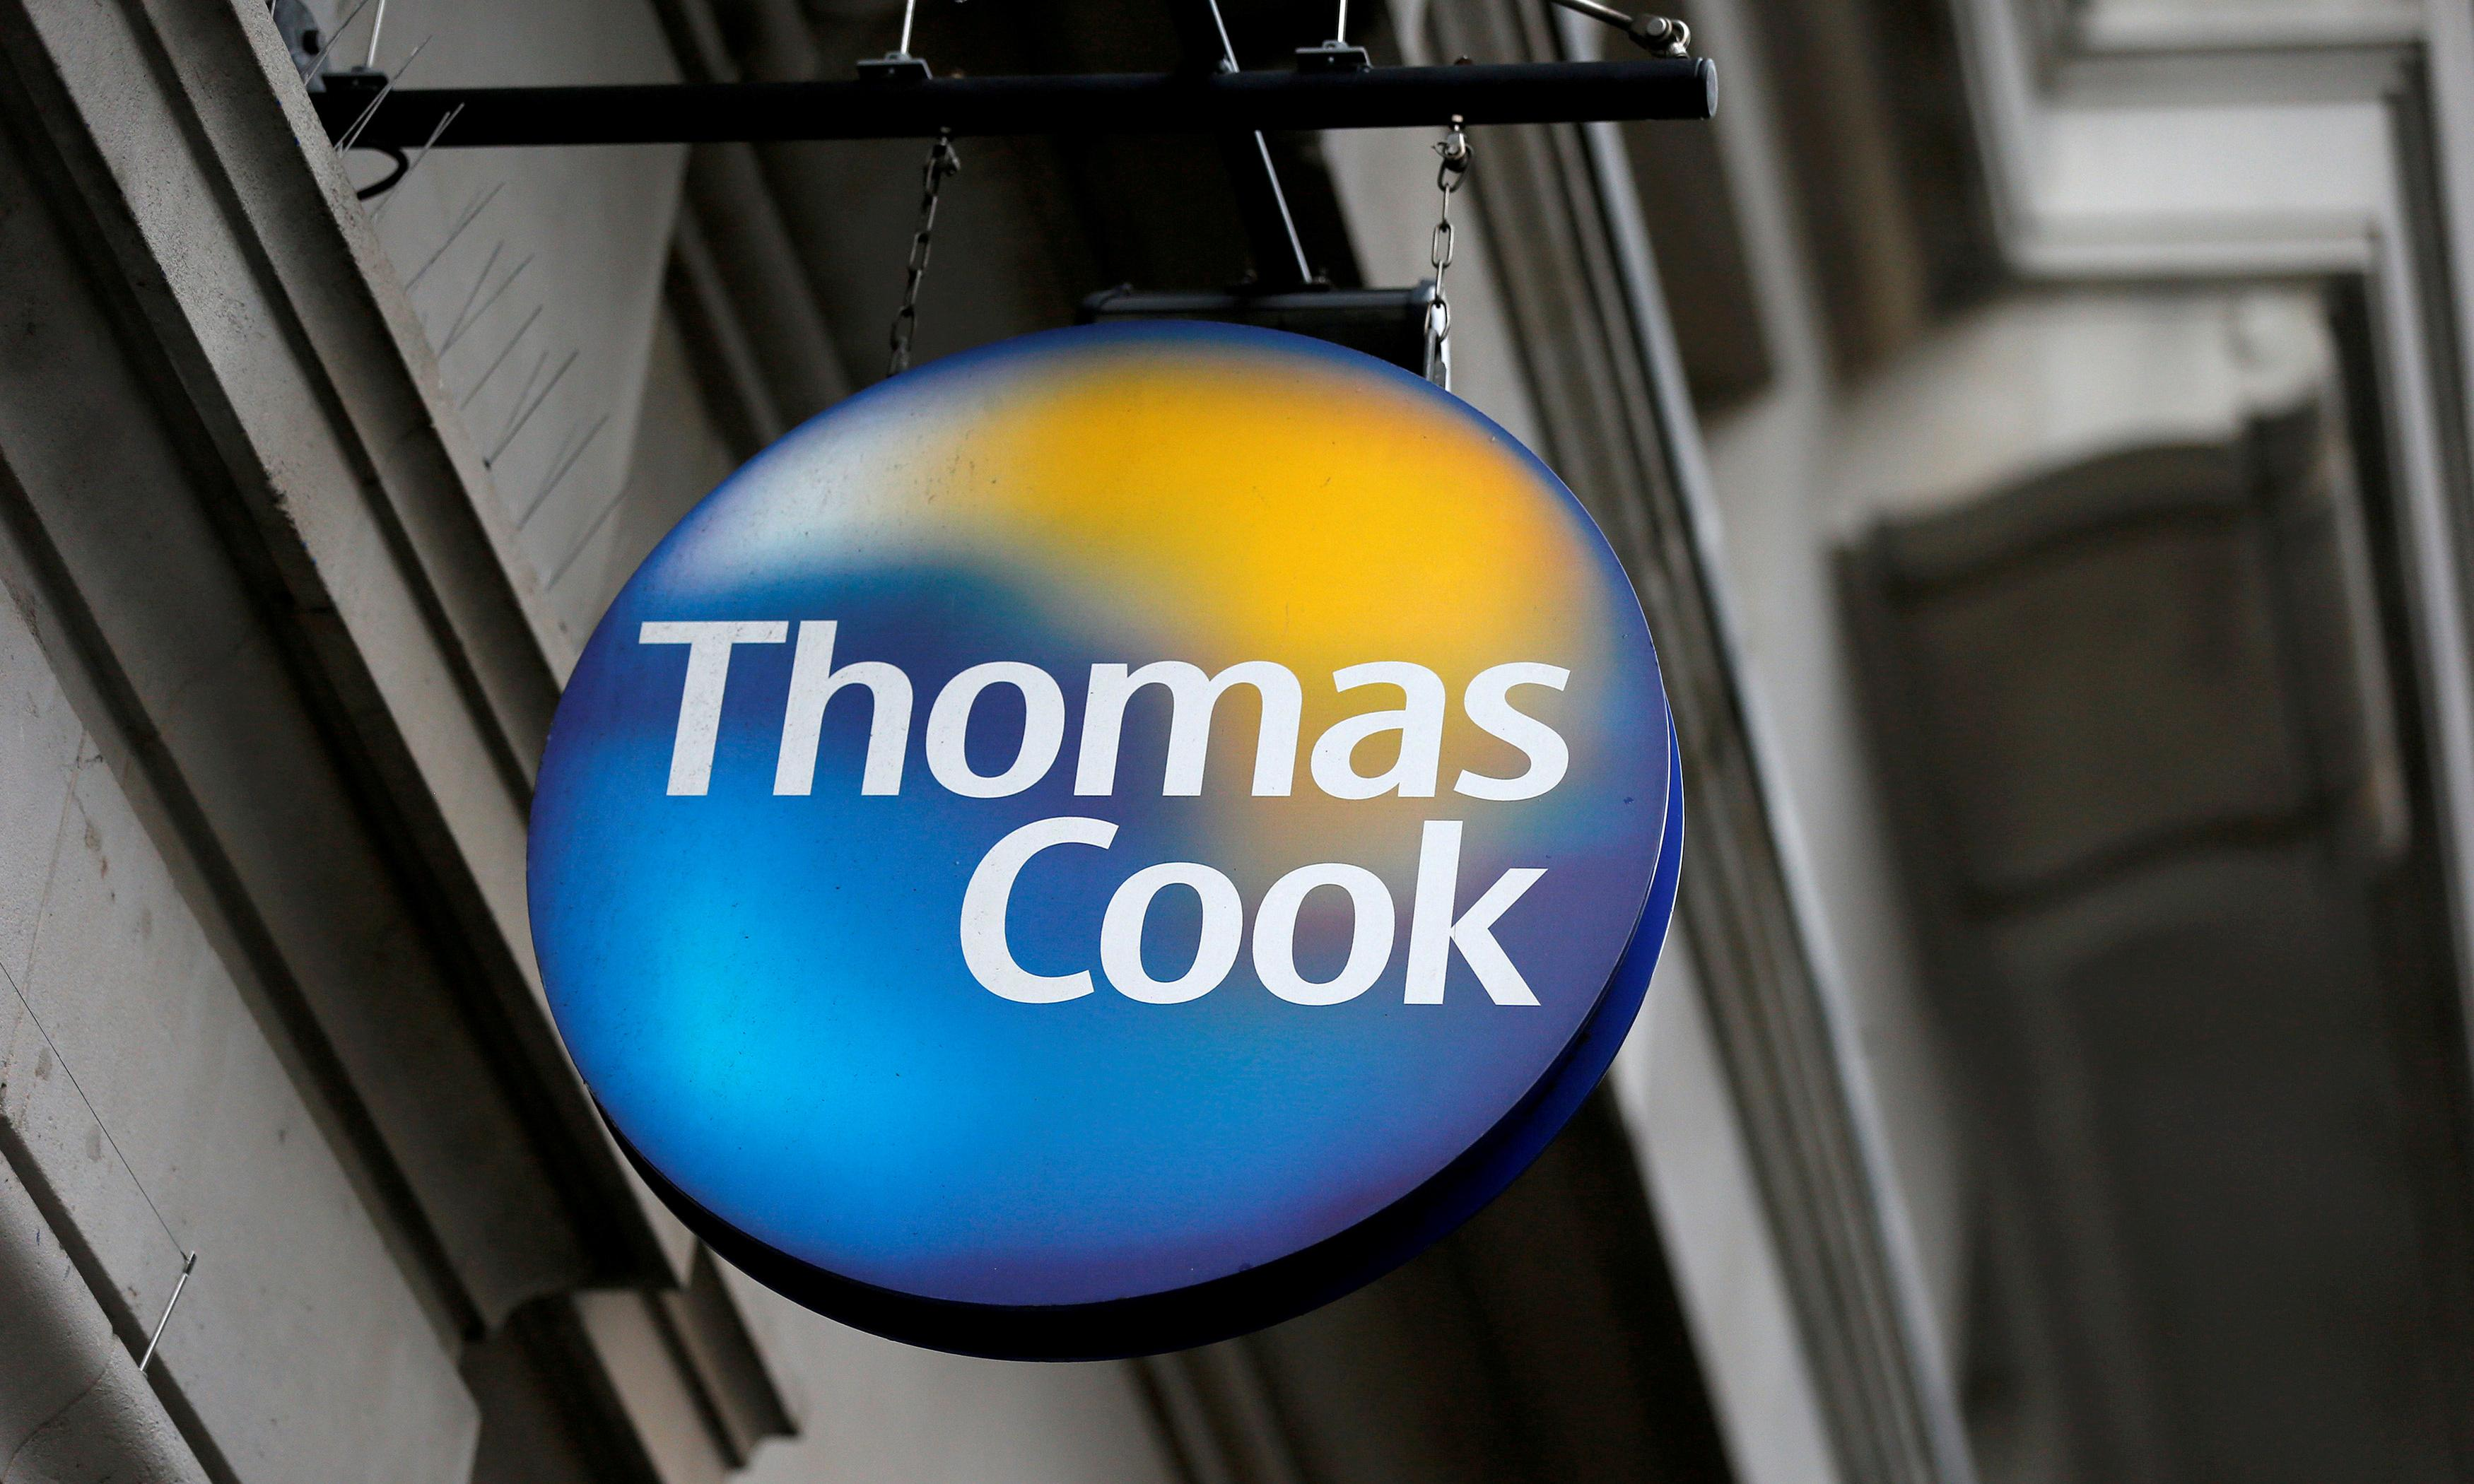 Thomas Cook shares 'worthless' after Citigroup warning